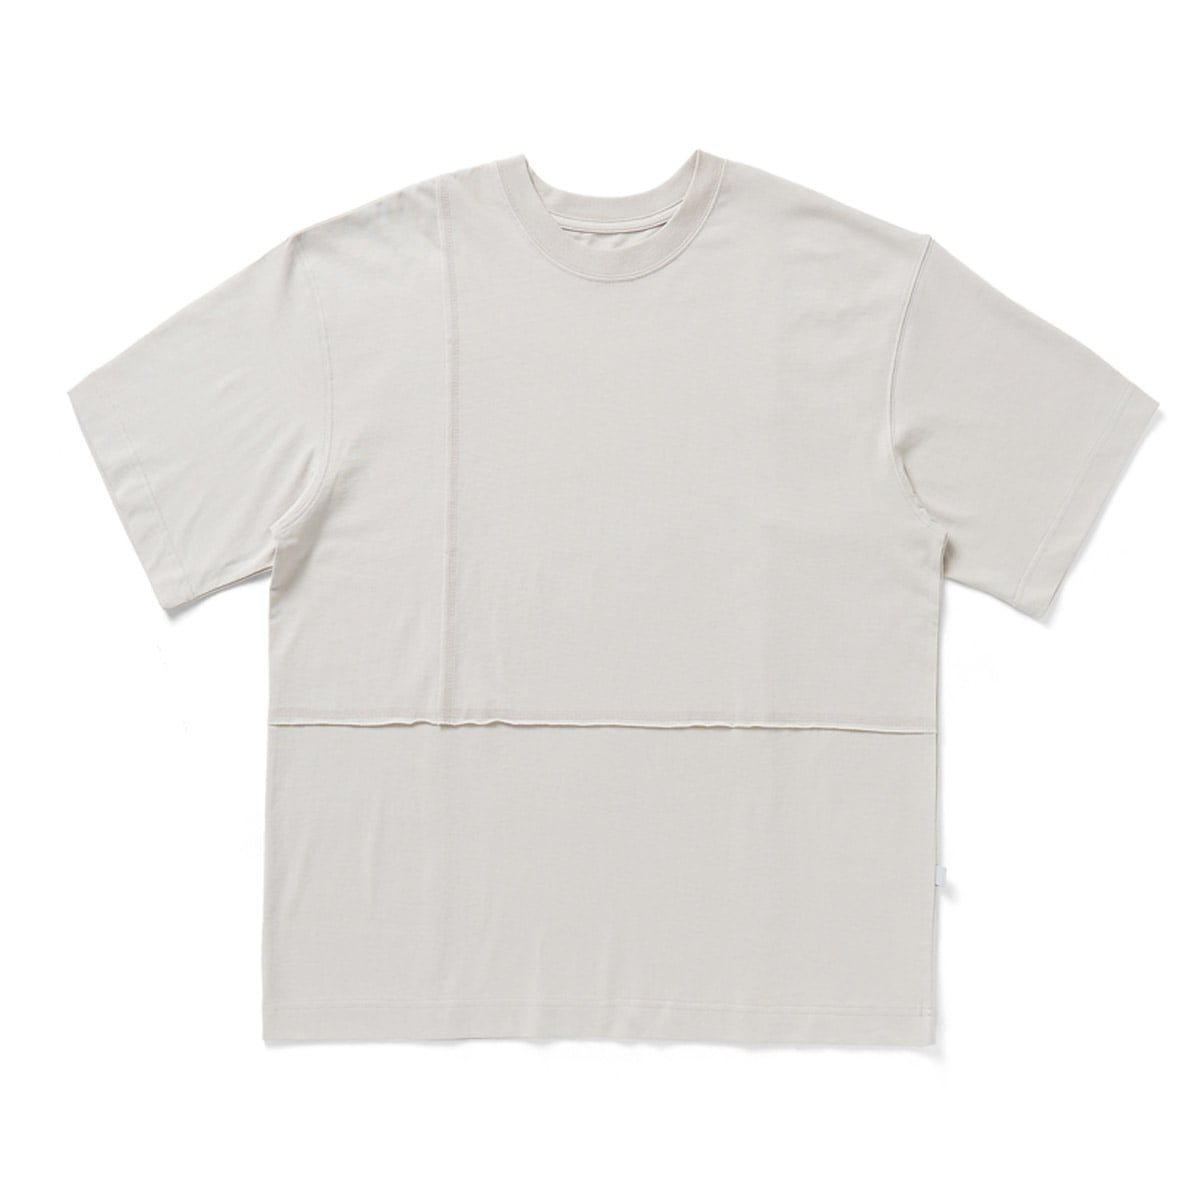 [RINO STORE X YOUTH. Exclusive] CUT-OFF T-SHIRT 'BEGIE'